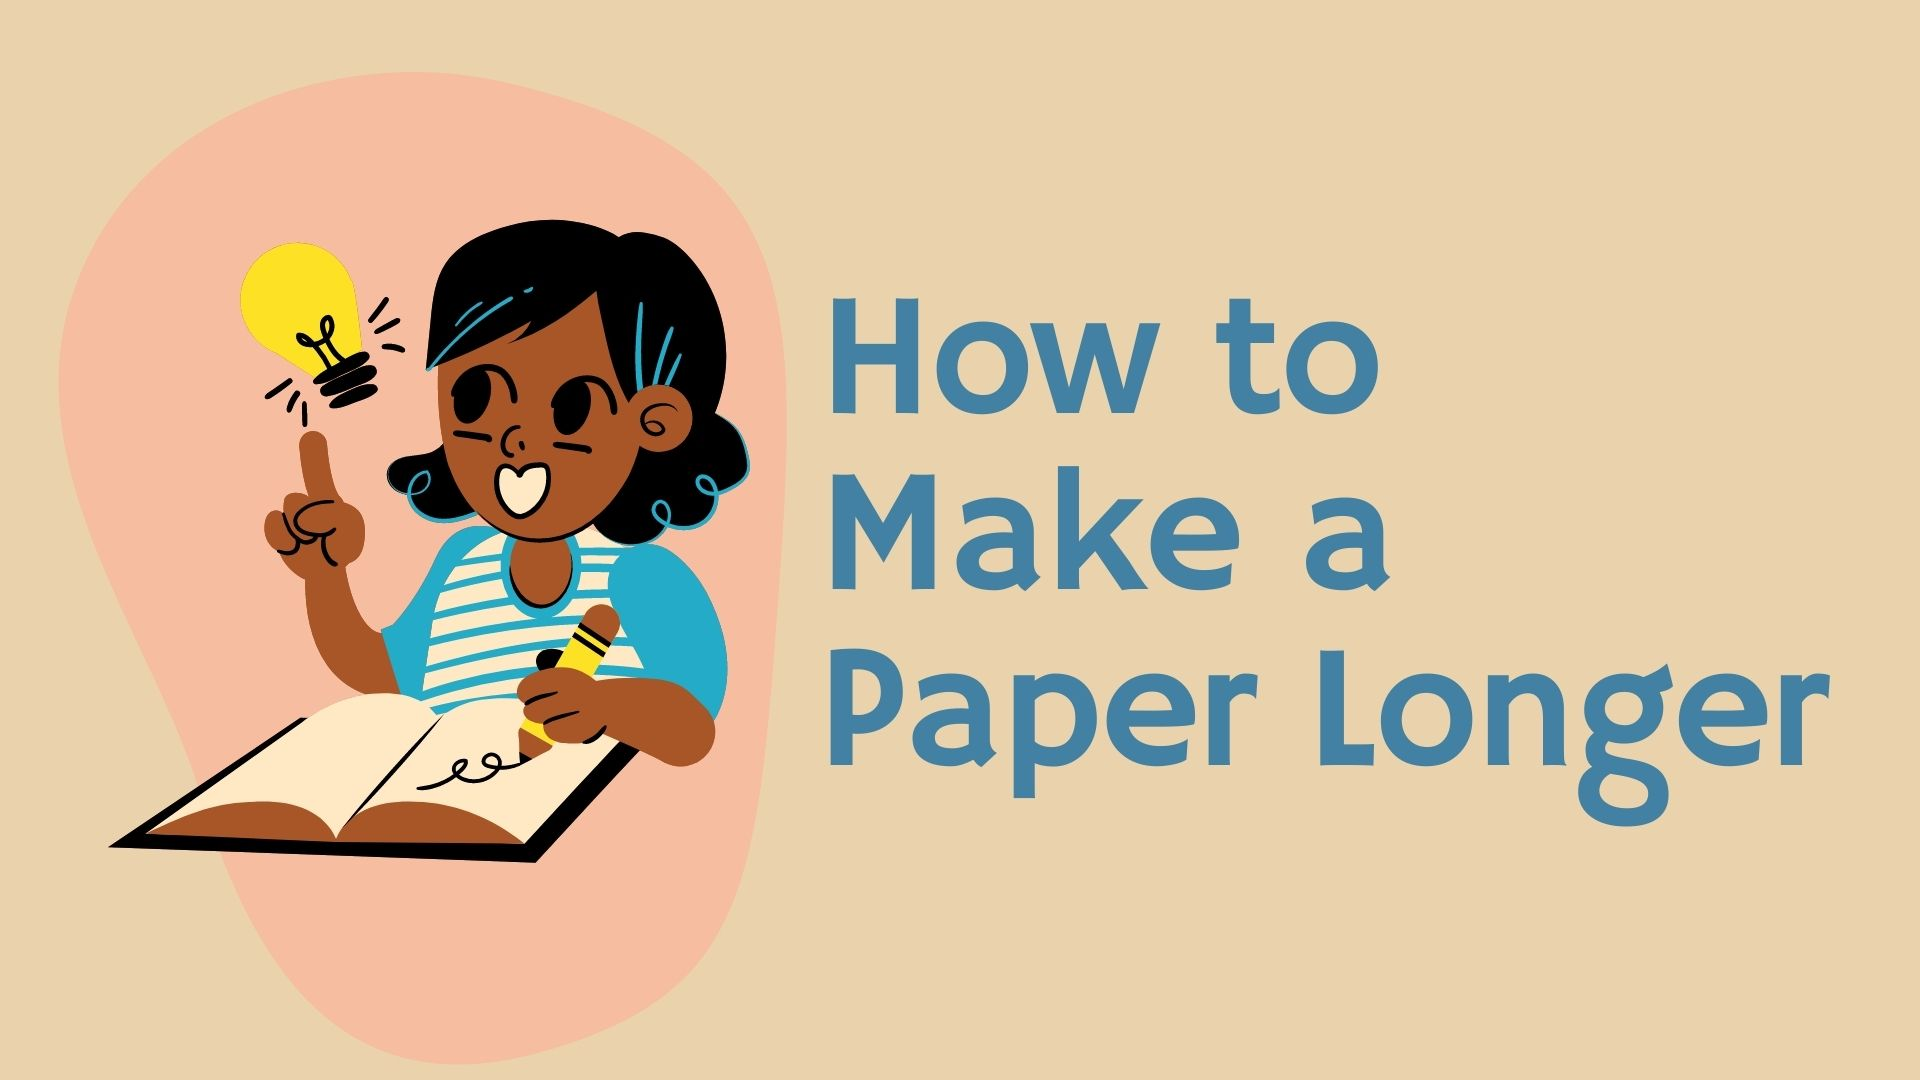 how to make a paper longer